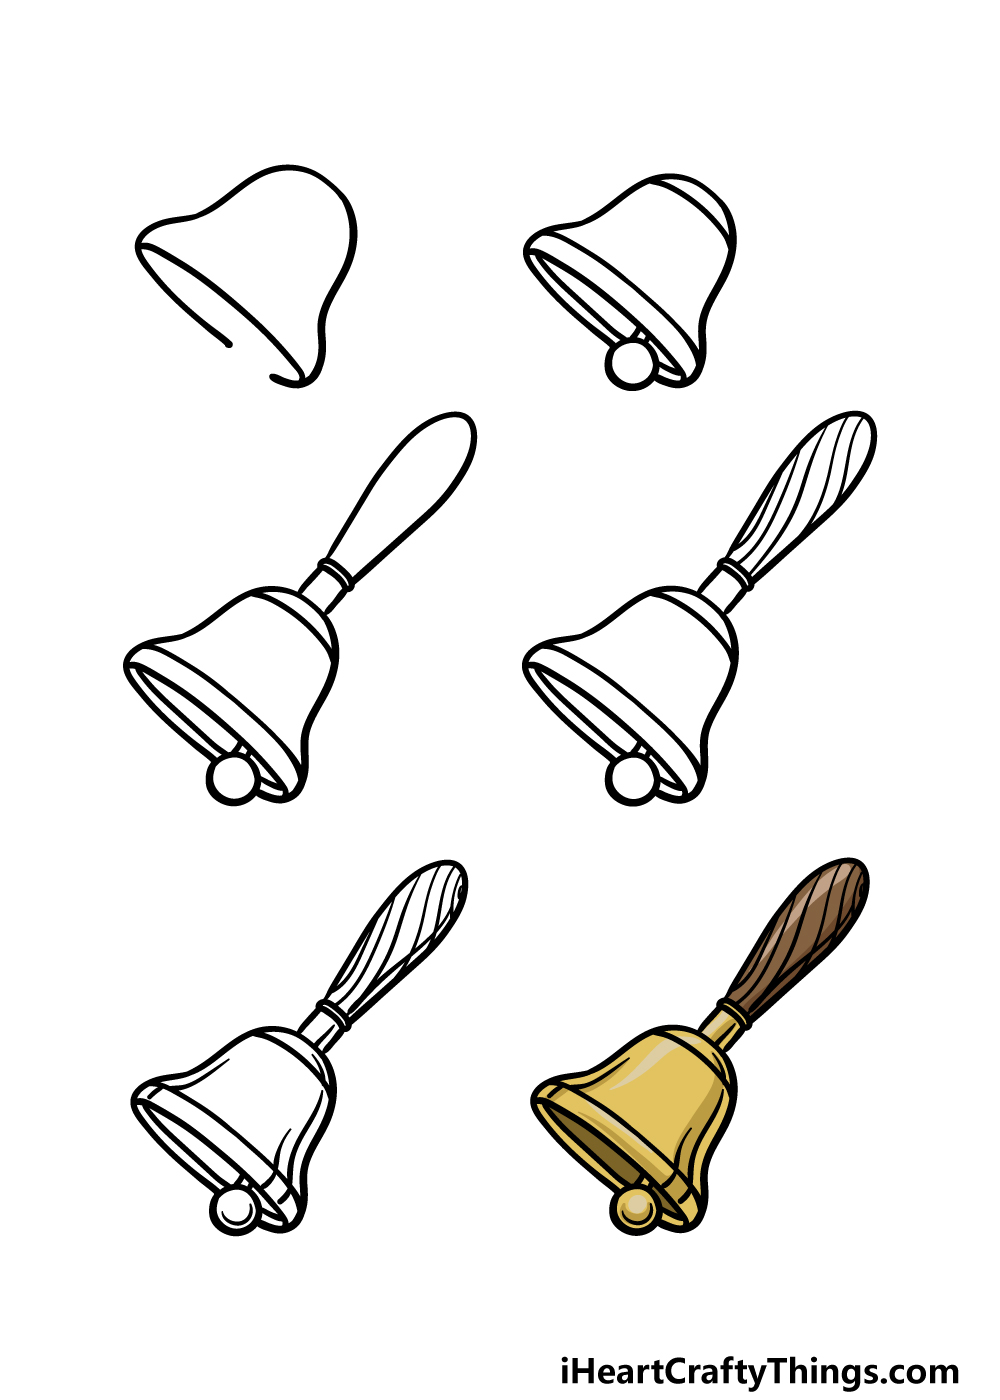 how to draw a bell in 6 steps